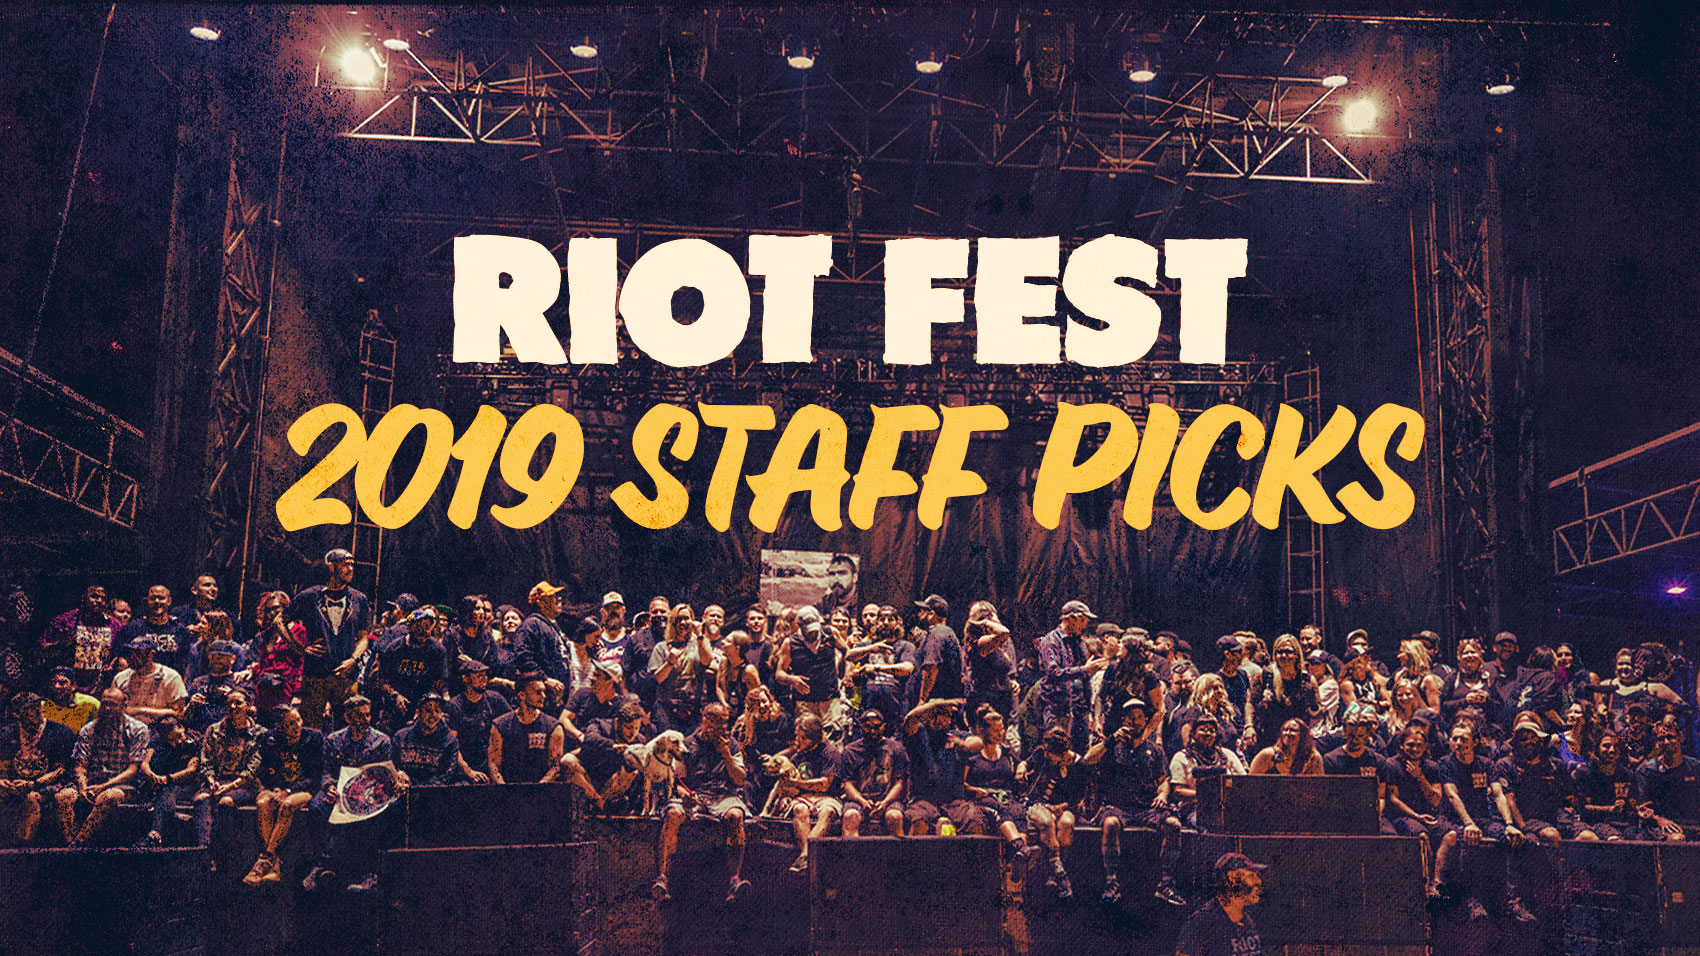 2019 Staff Picks: Who The Heck Should I See at Riot Fest?